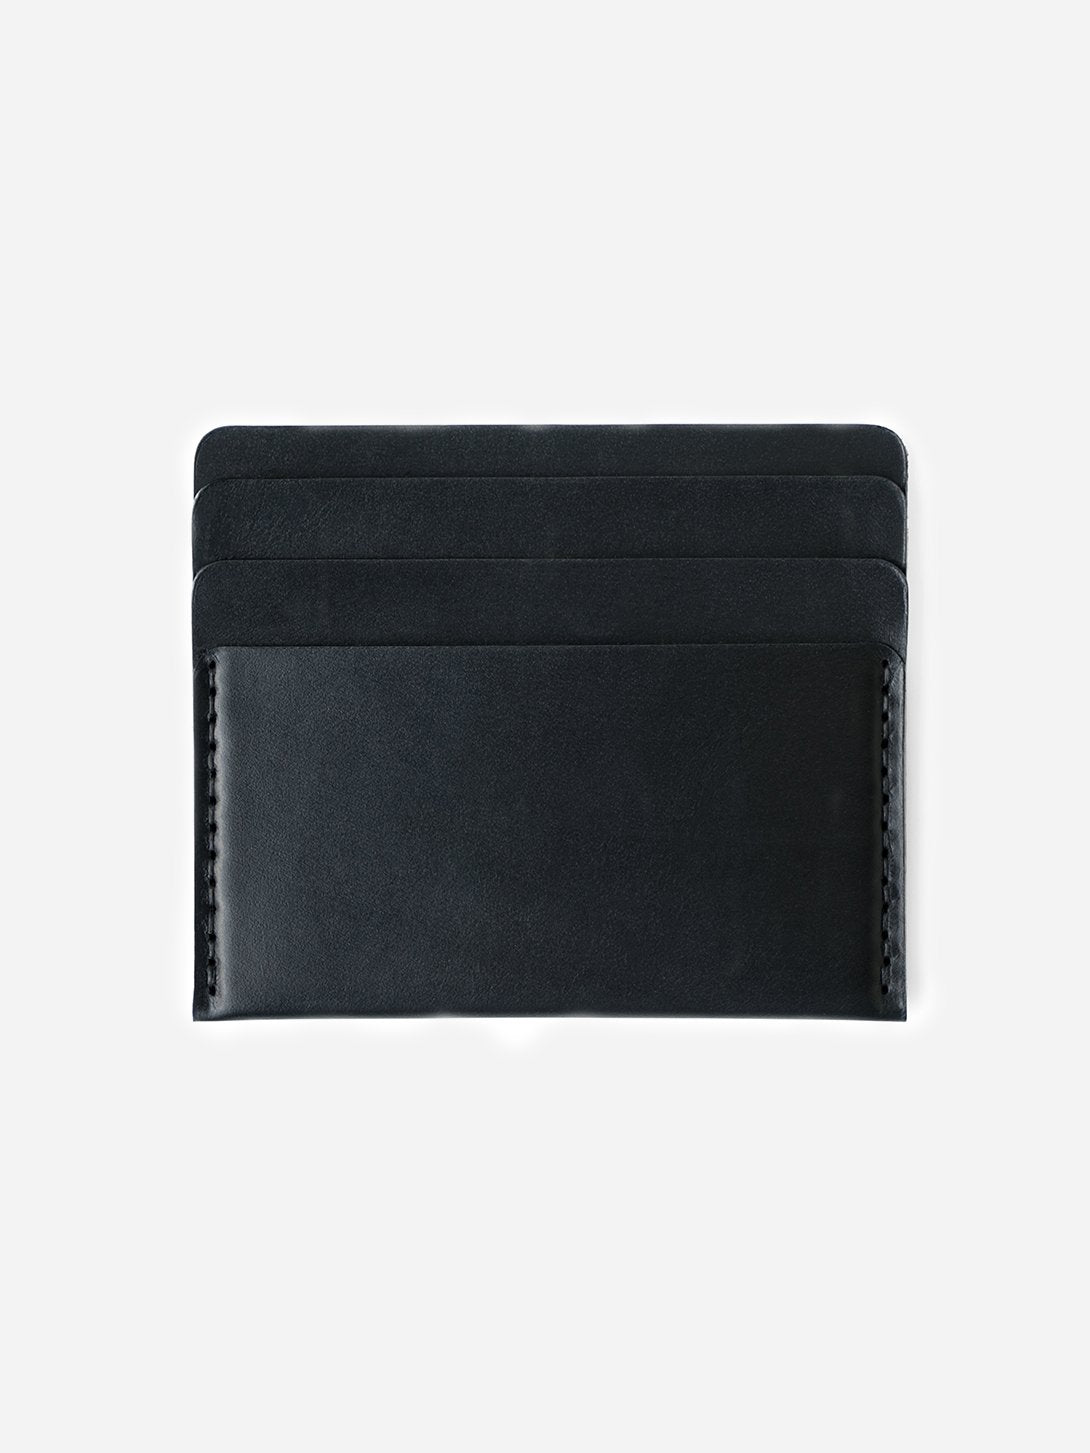 BLACK mens card holder brown leather wallet cascade wallet makr